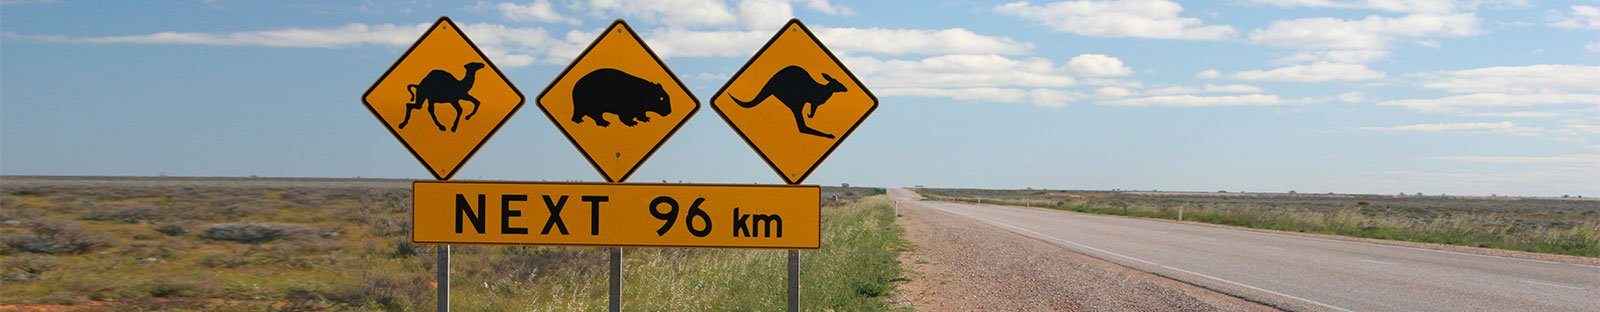 Warning signs for wildlife in the Australian outback